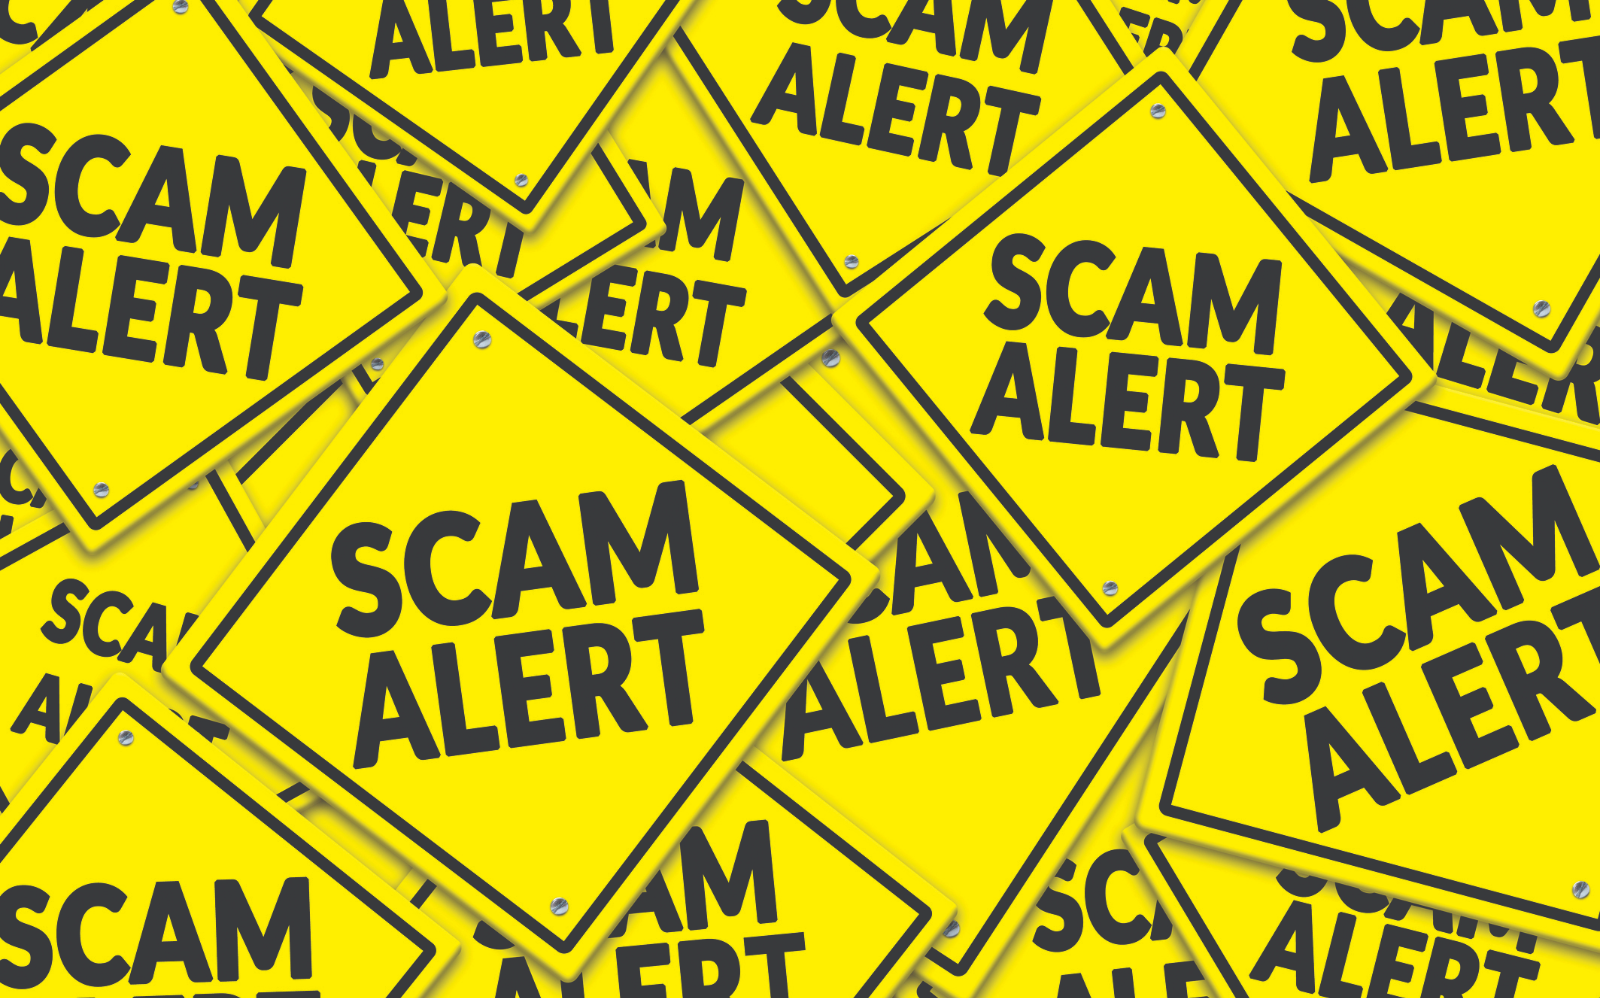 signs saying Scam Alert